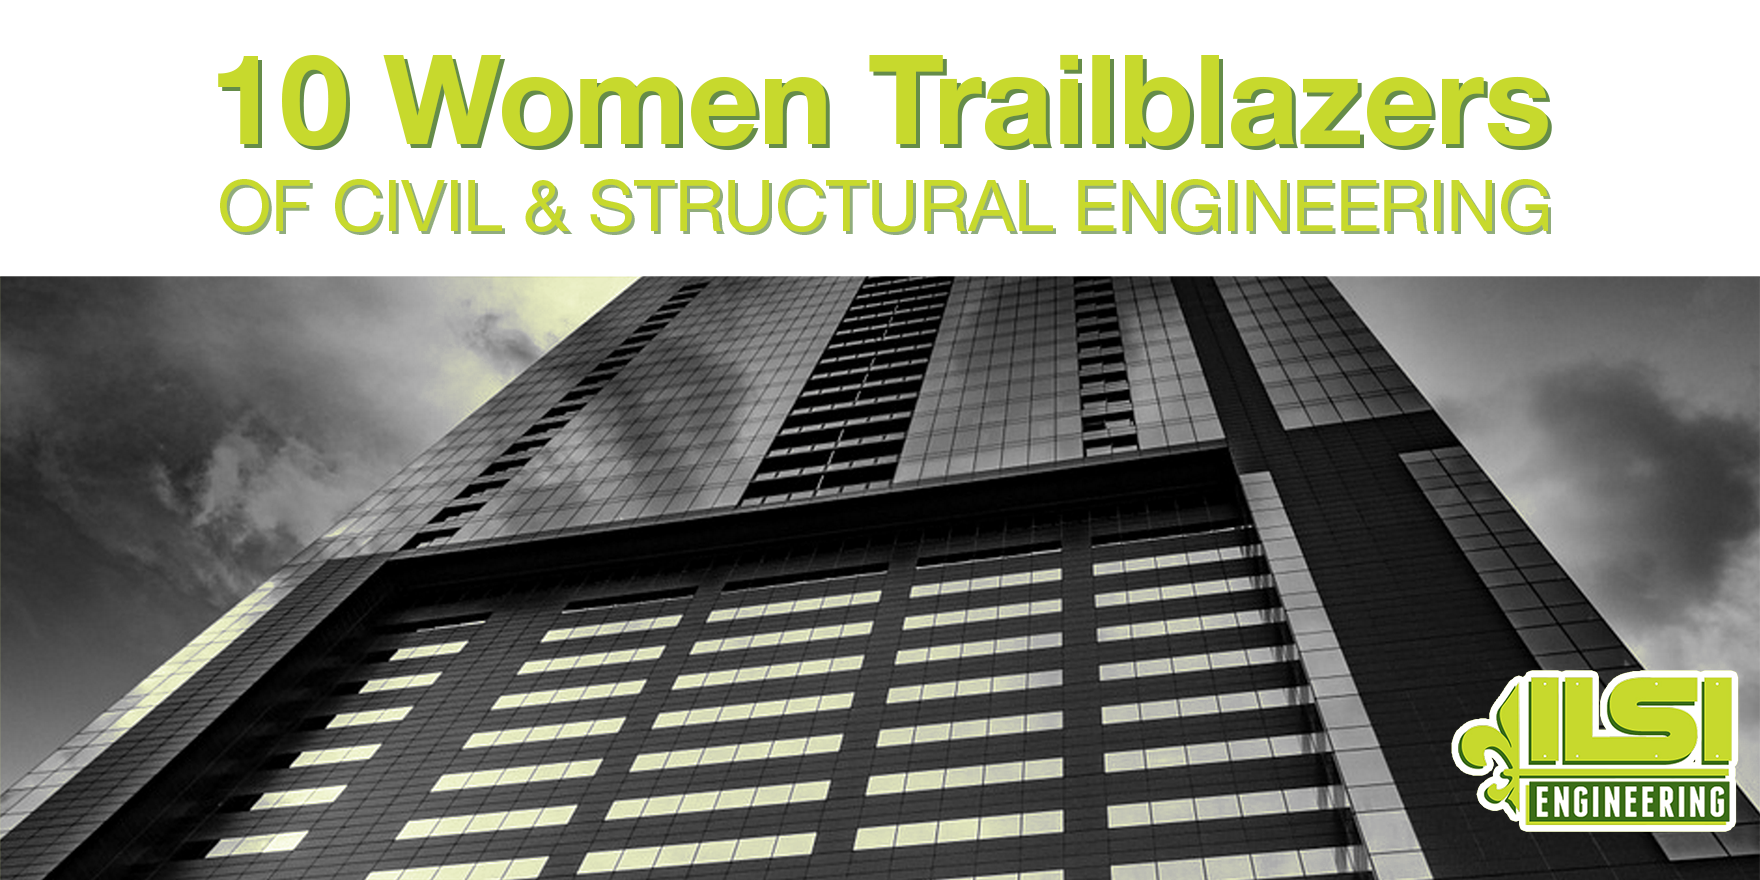 10 Women Trailblazers of Civil & Structural Engineering